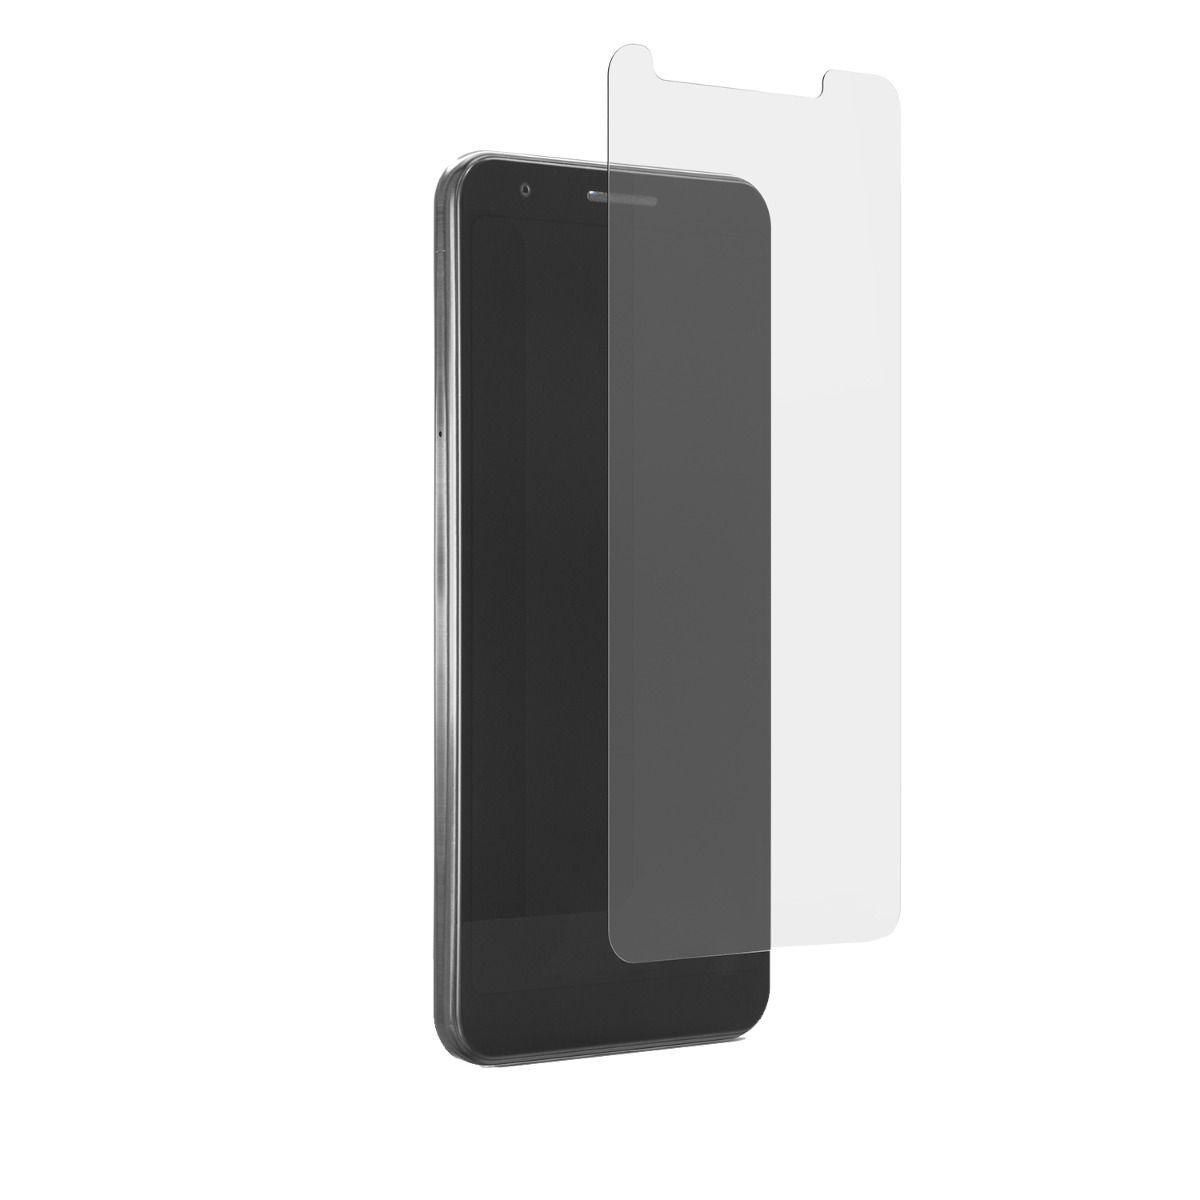 Samsung Galaxy S8 Active High-Definition Glass Screen Protector with Alignment Tray